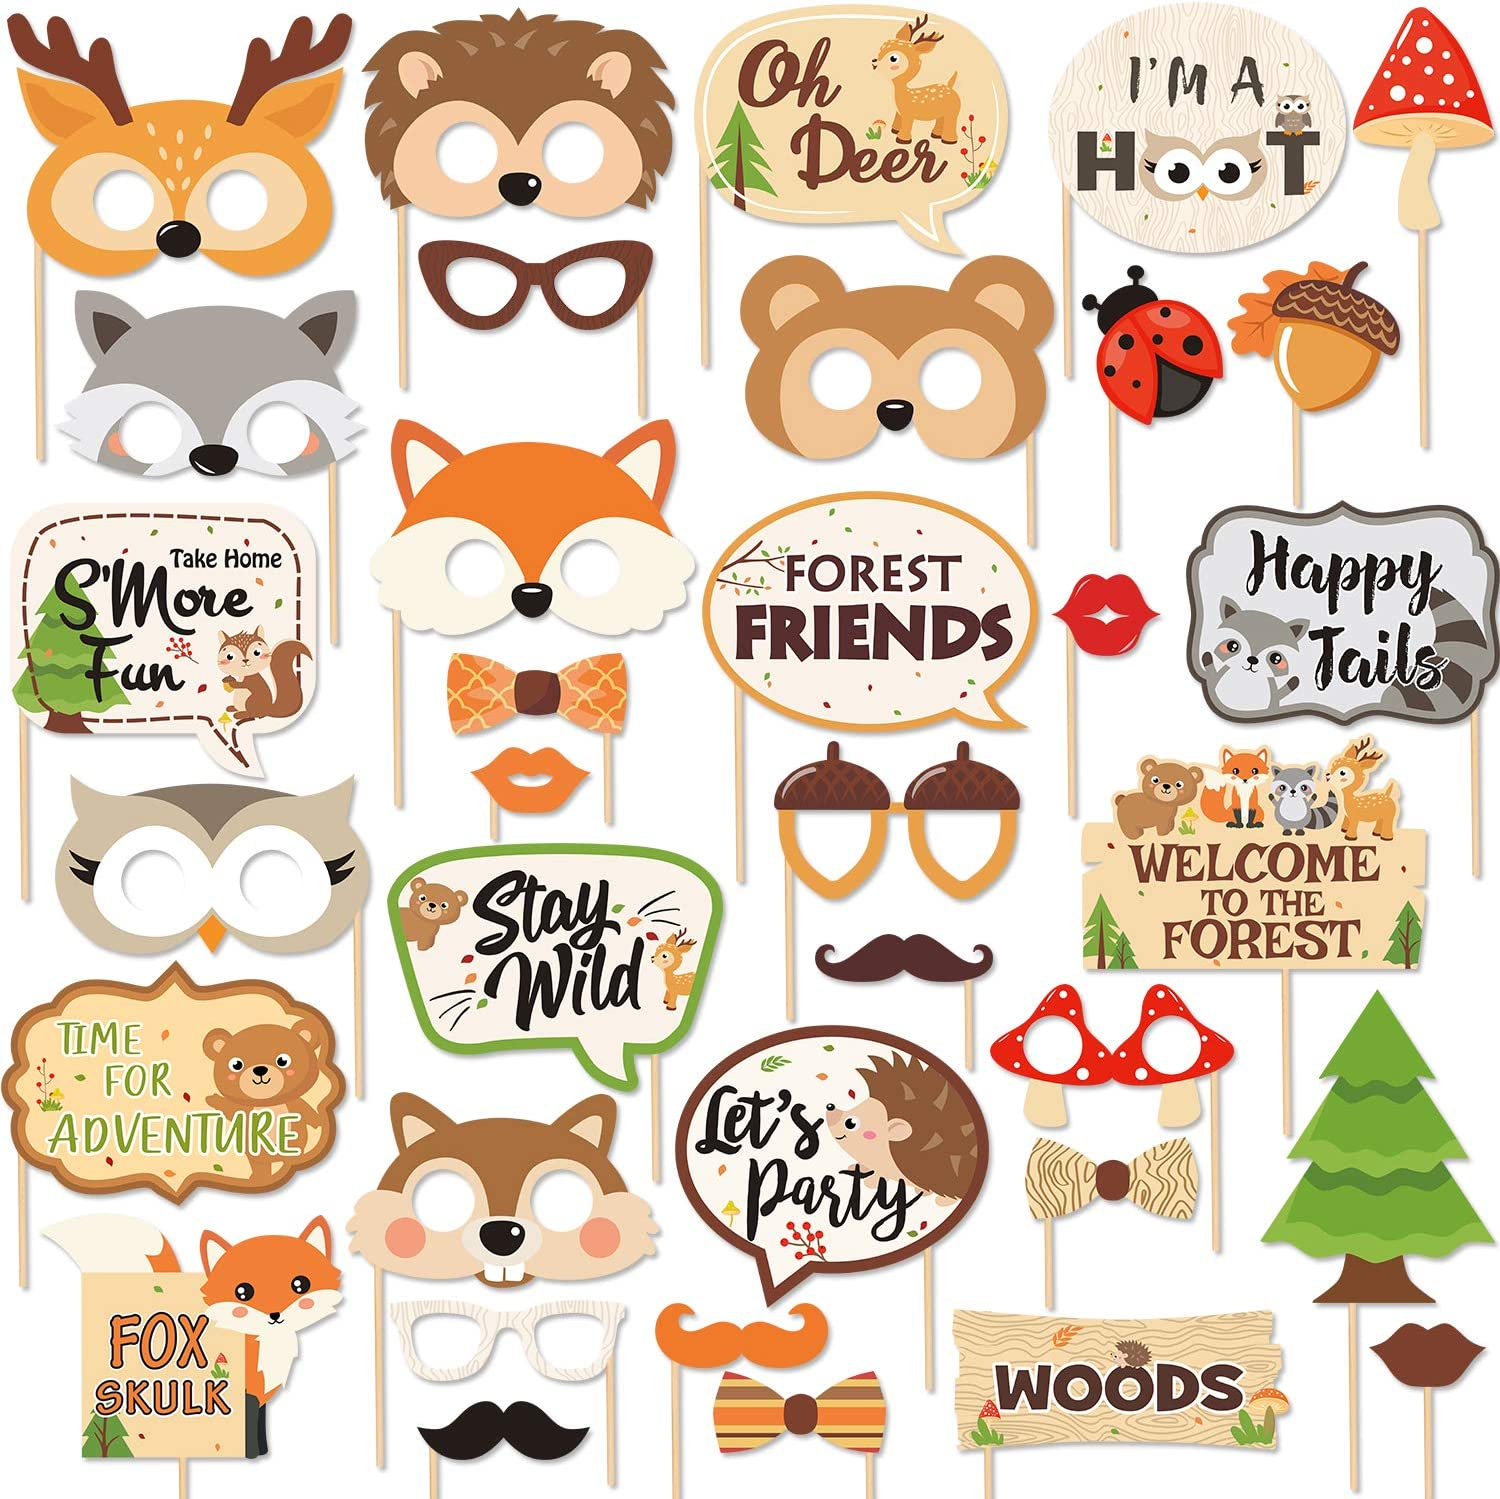 Forest Animals And Woodland Theme Creature Party Supplies For Boys Or Girls Baby Shower Welcome Baby Banner Woodland Baby Shower Decorations Woodland Baby Shower Banner Banners